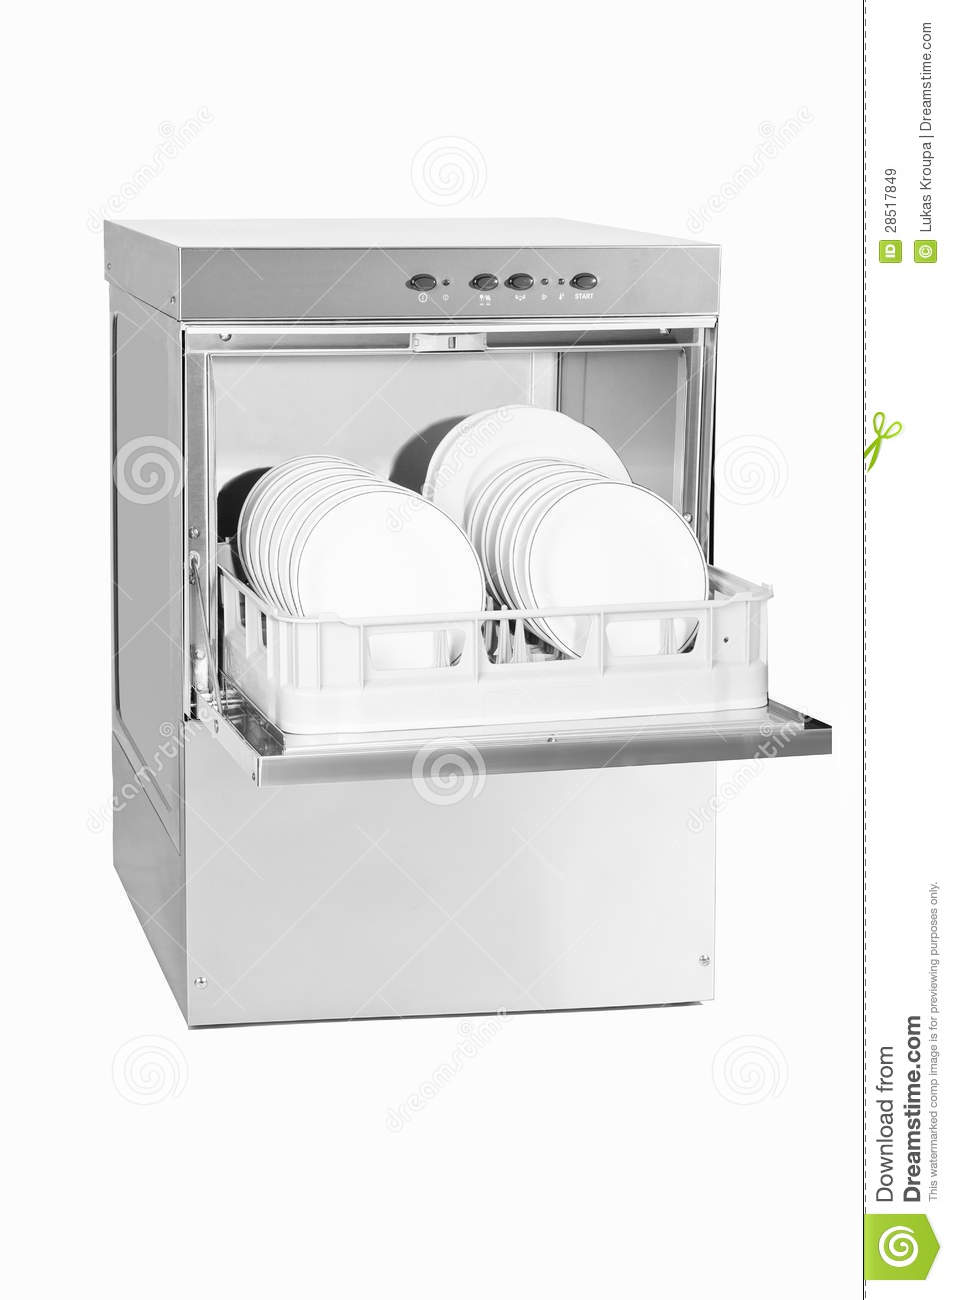 Dishwasher With Opened Door On White Background With Plates